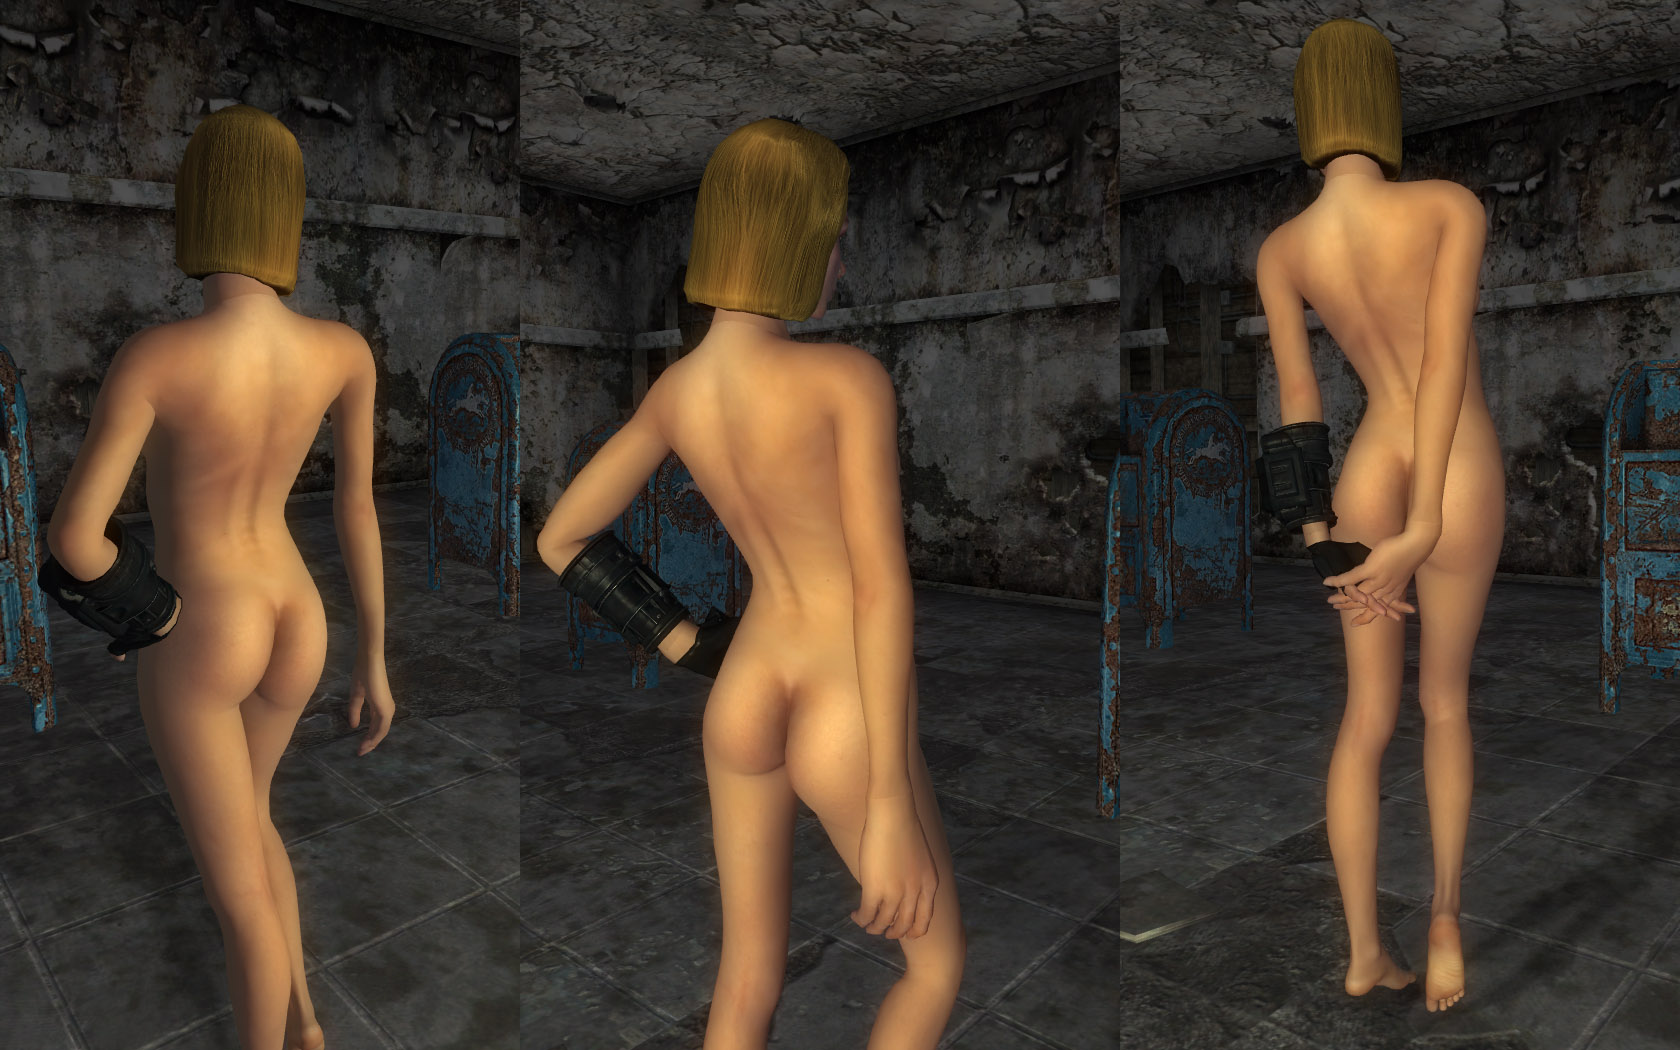 Fallout 3 nude girls mod uncensored sexy pic